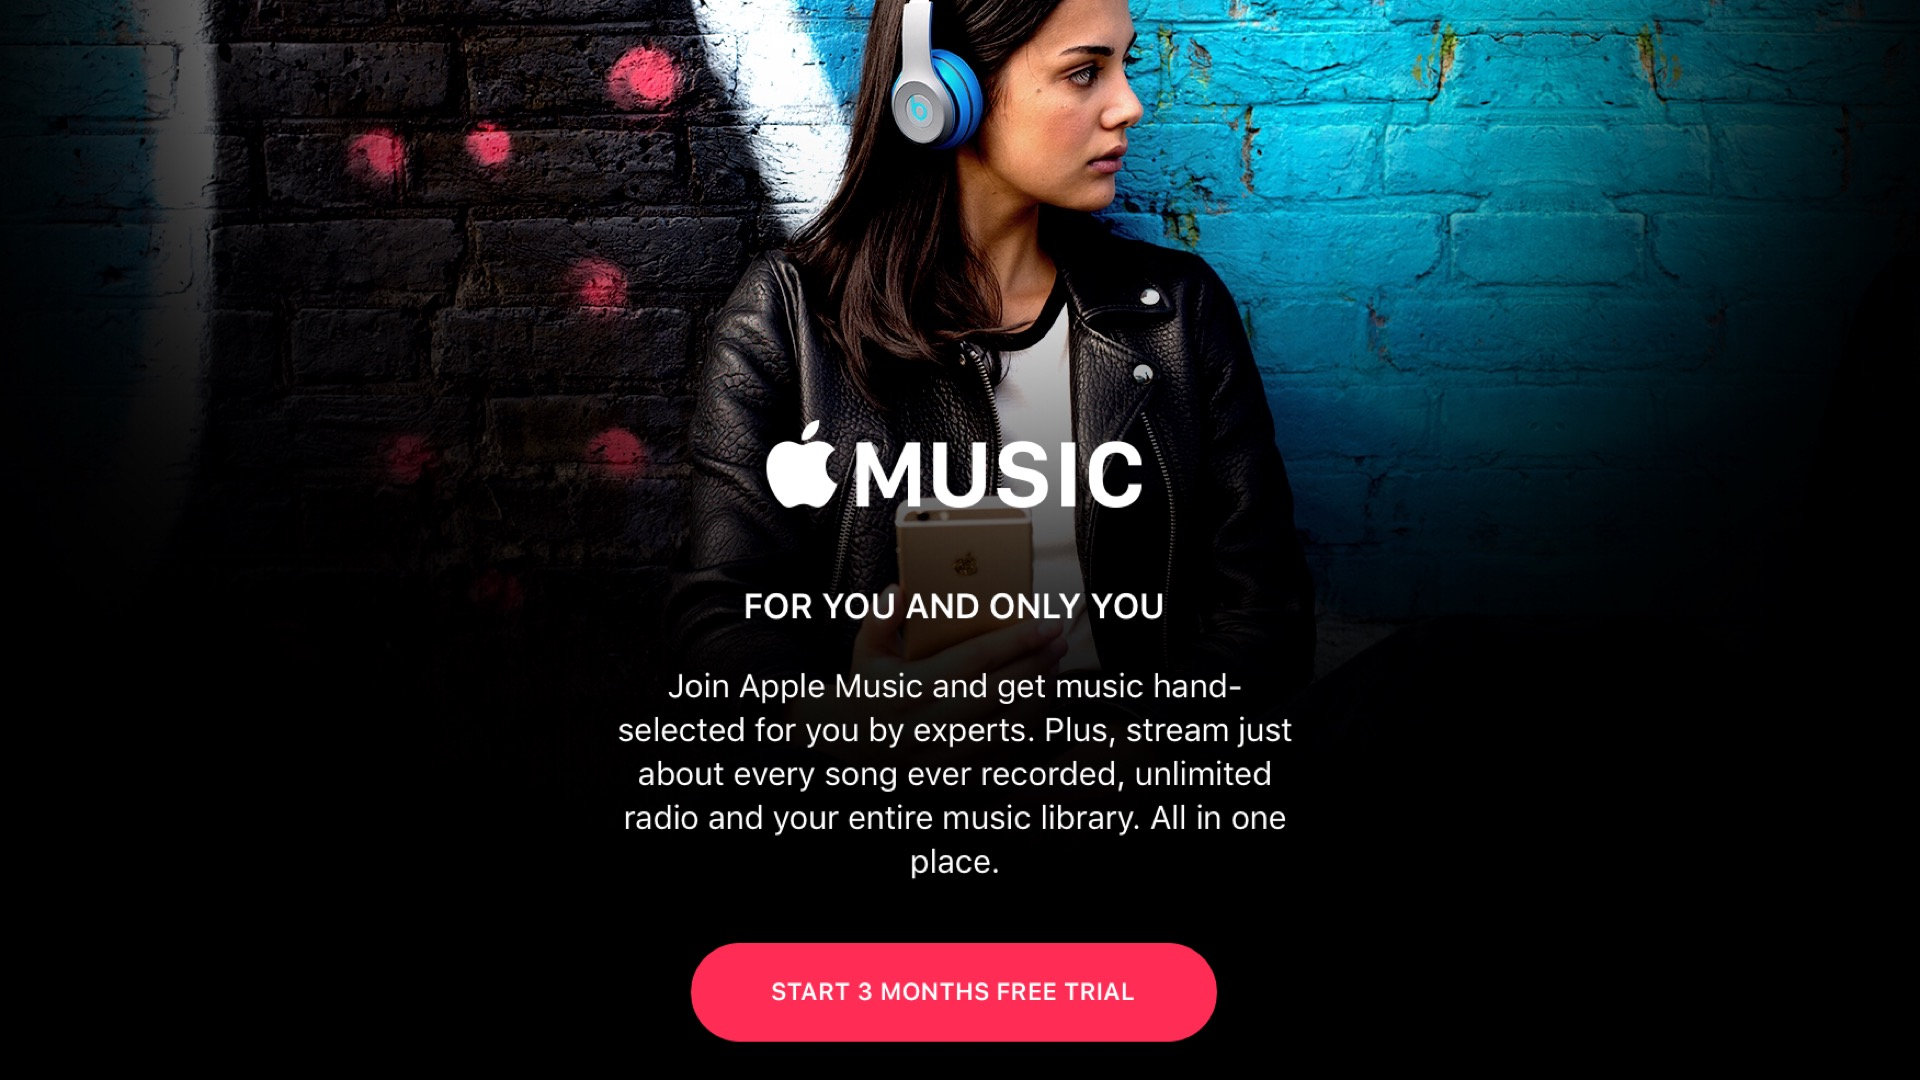 New Student Membership Option Discounts Apple Music By 50